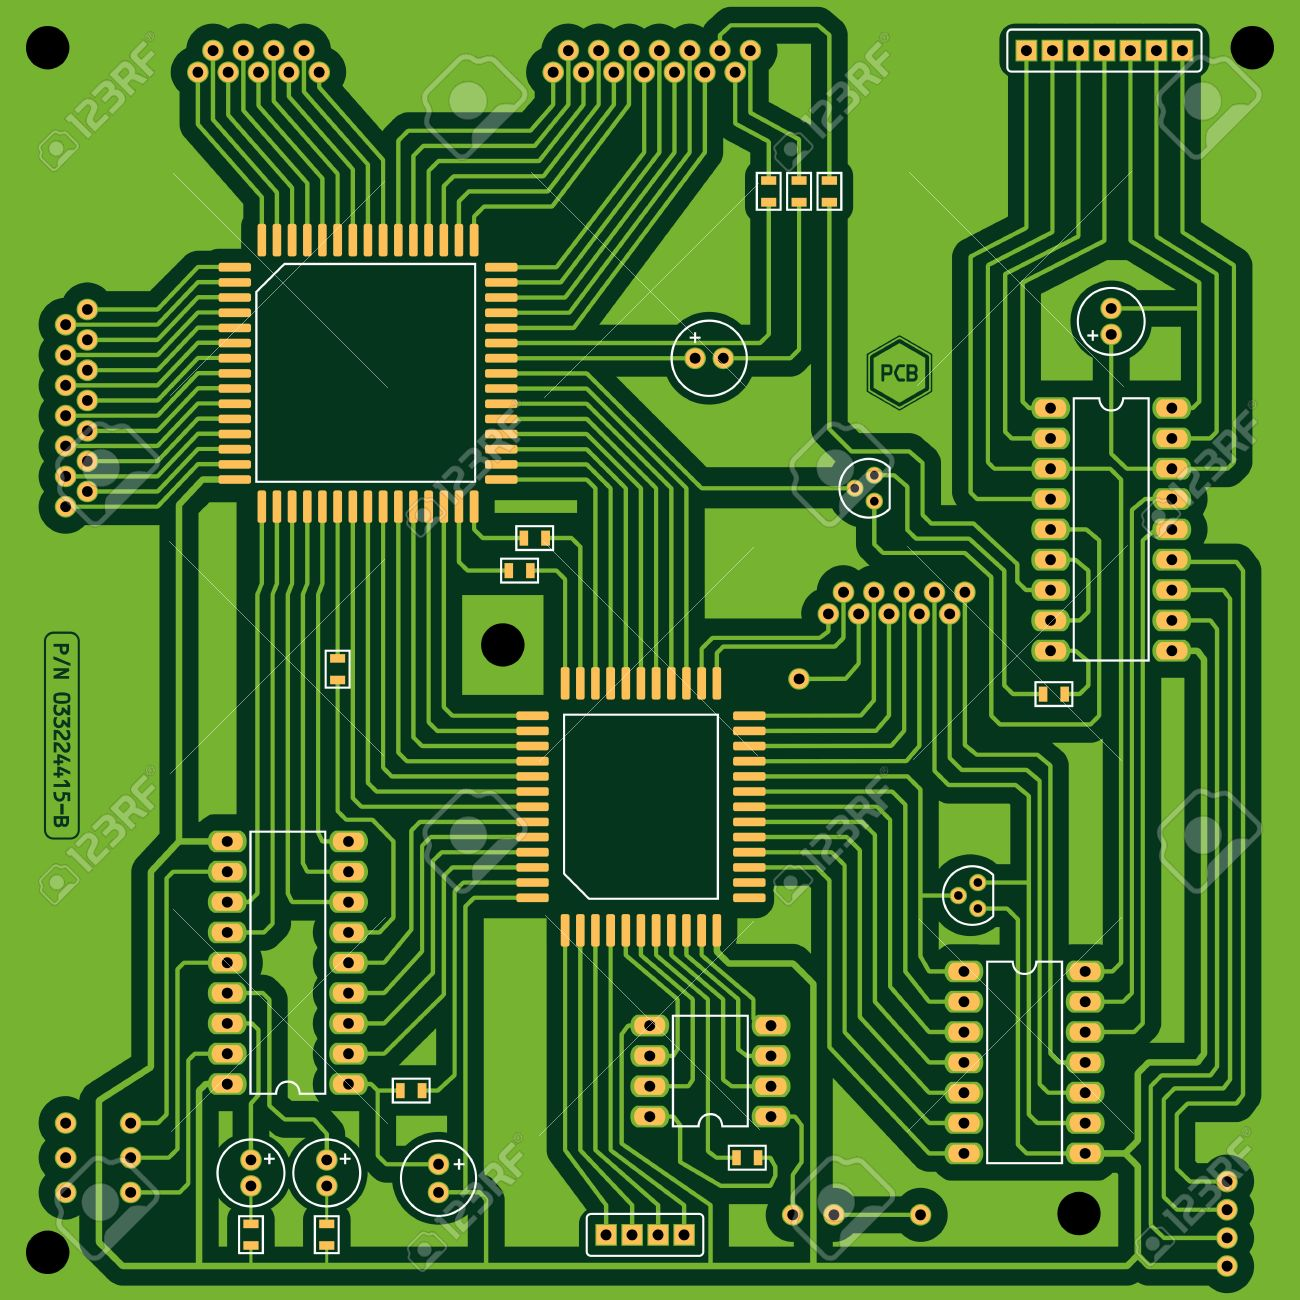 Circuit Board Pcb Wiyhout Engine Control Wiring Diagram Design Schematics Gerber Data Sandwichpcbwith Illustration Of A Green Printed Without Electronic Rh 123rf Com